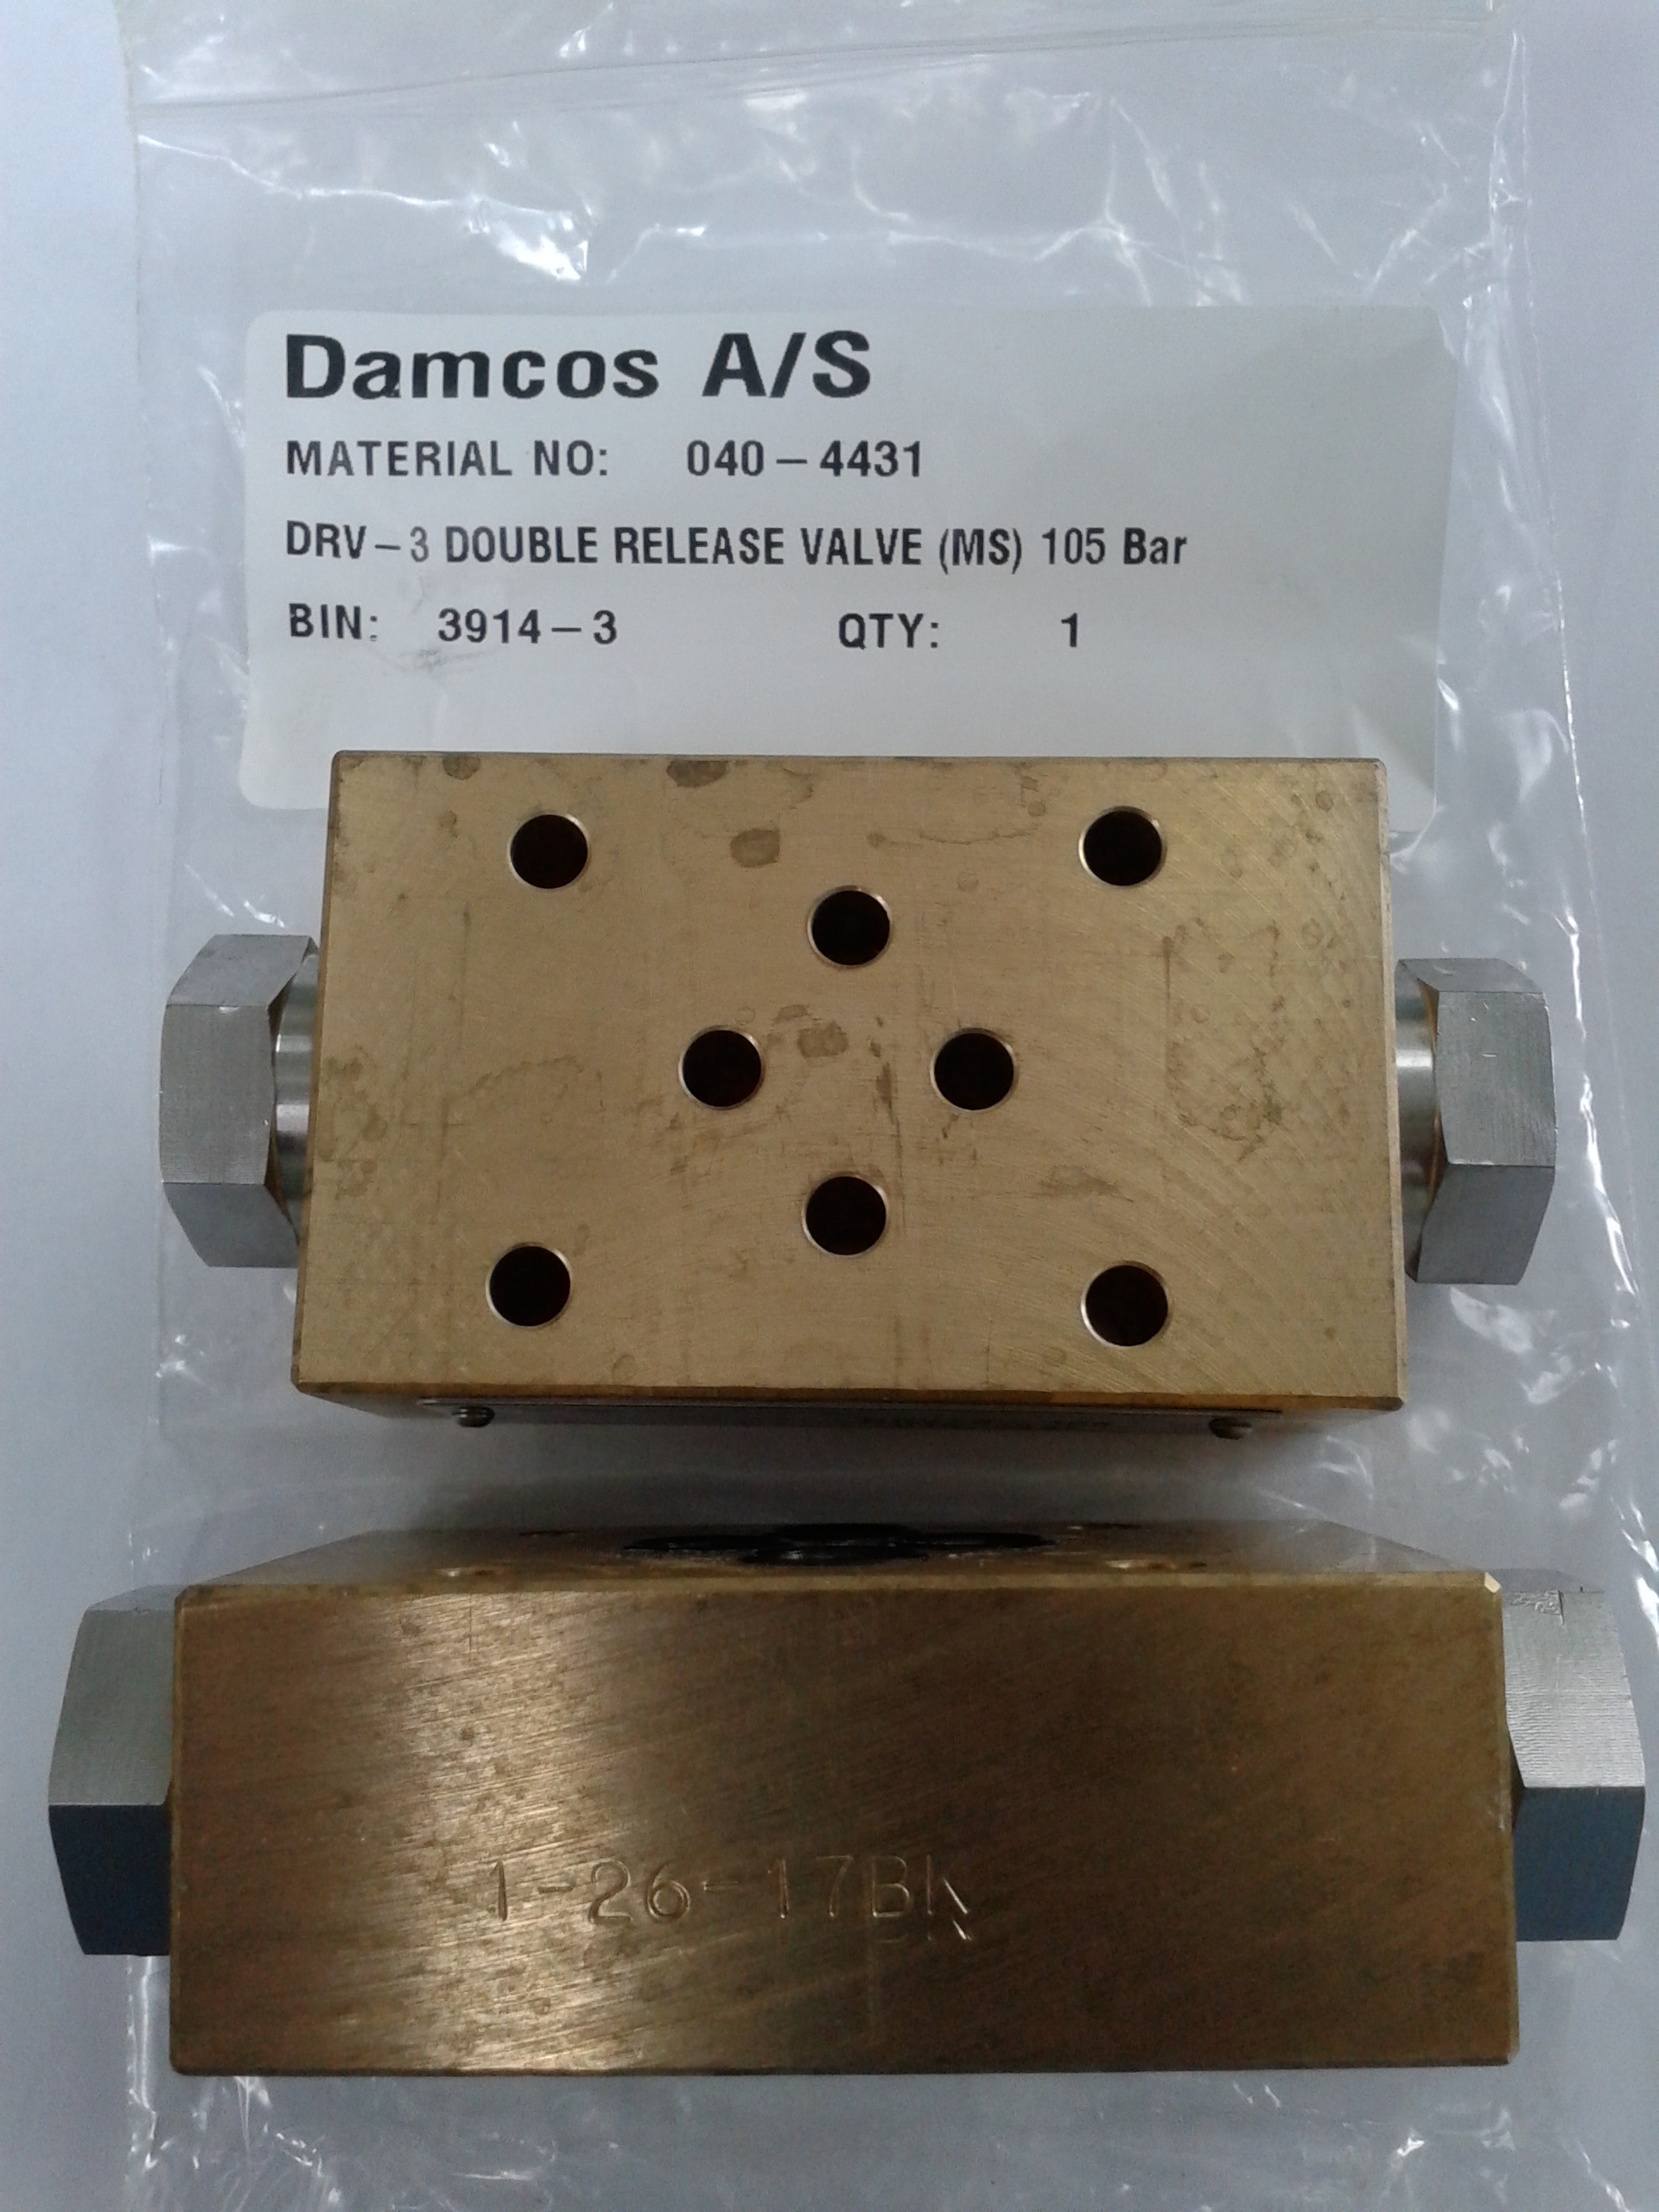 Damcos: Danfoss : Superfos DRV-3 Double Release Valve (MS) 105 Bar (Part No- 040-4431)